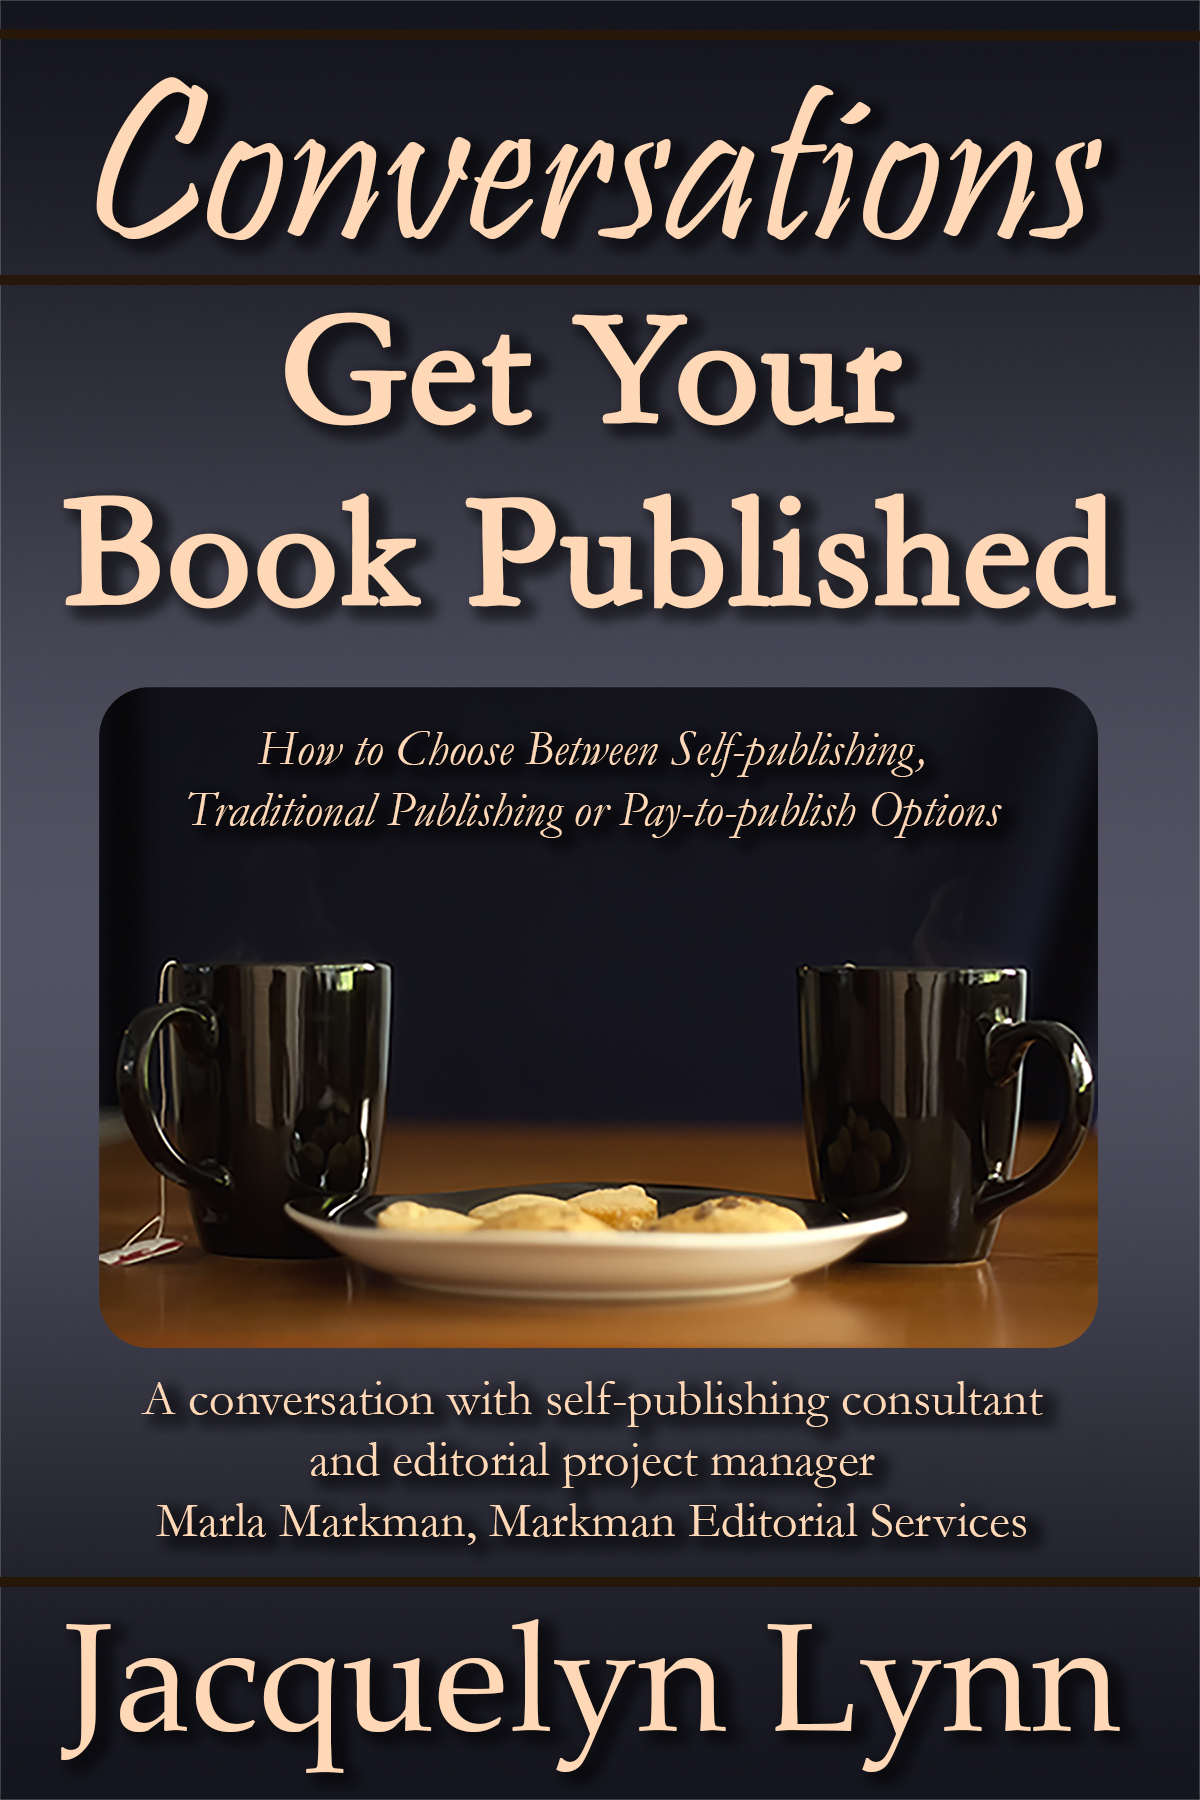 Get Your Book Published: How to Choose Between Self-publishing, Traditional Publishing or Pay-to-publish Options / Jacquelyn Lynn